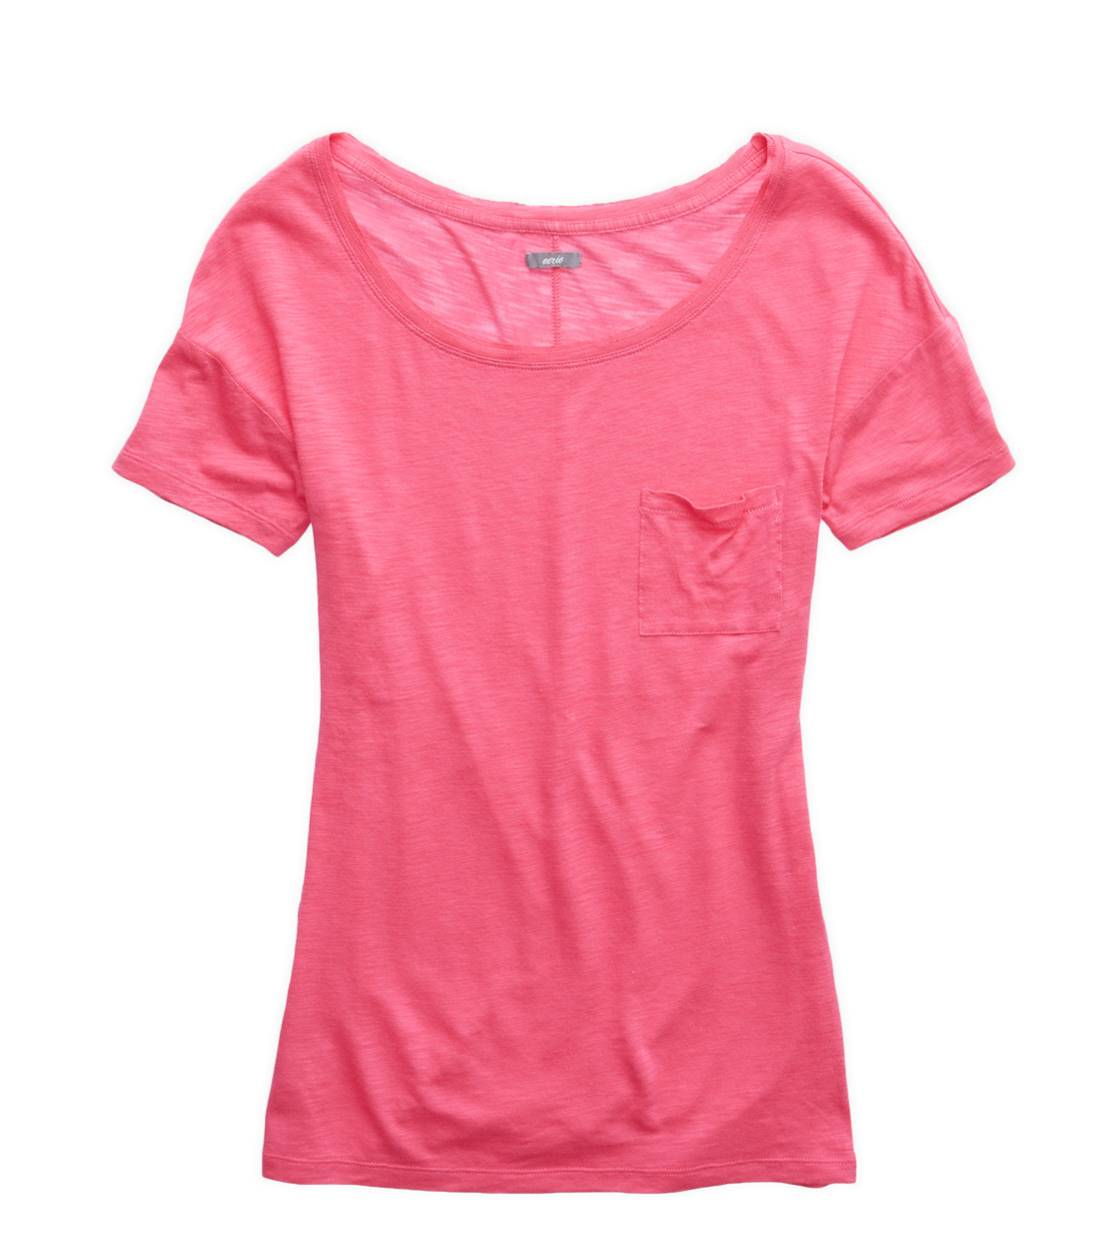 Sweetheart Aerie Slim Fit Scoop Neck Pocket T-Shirt